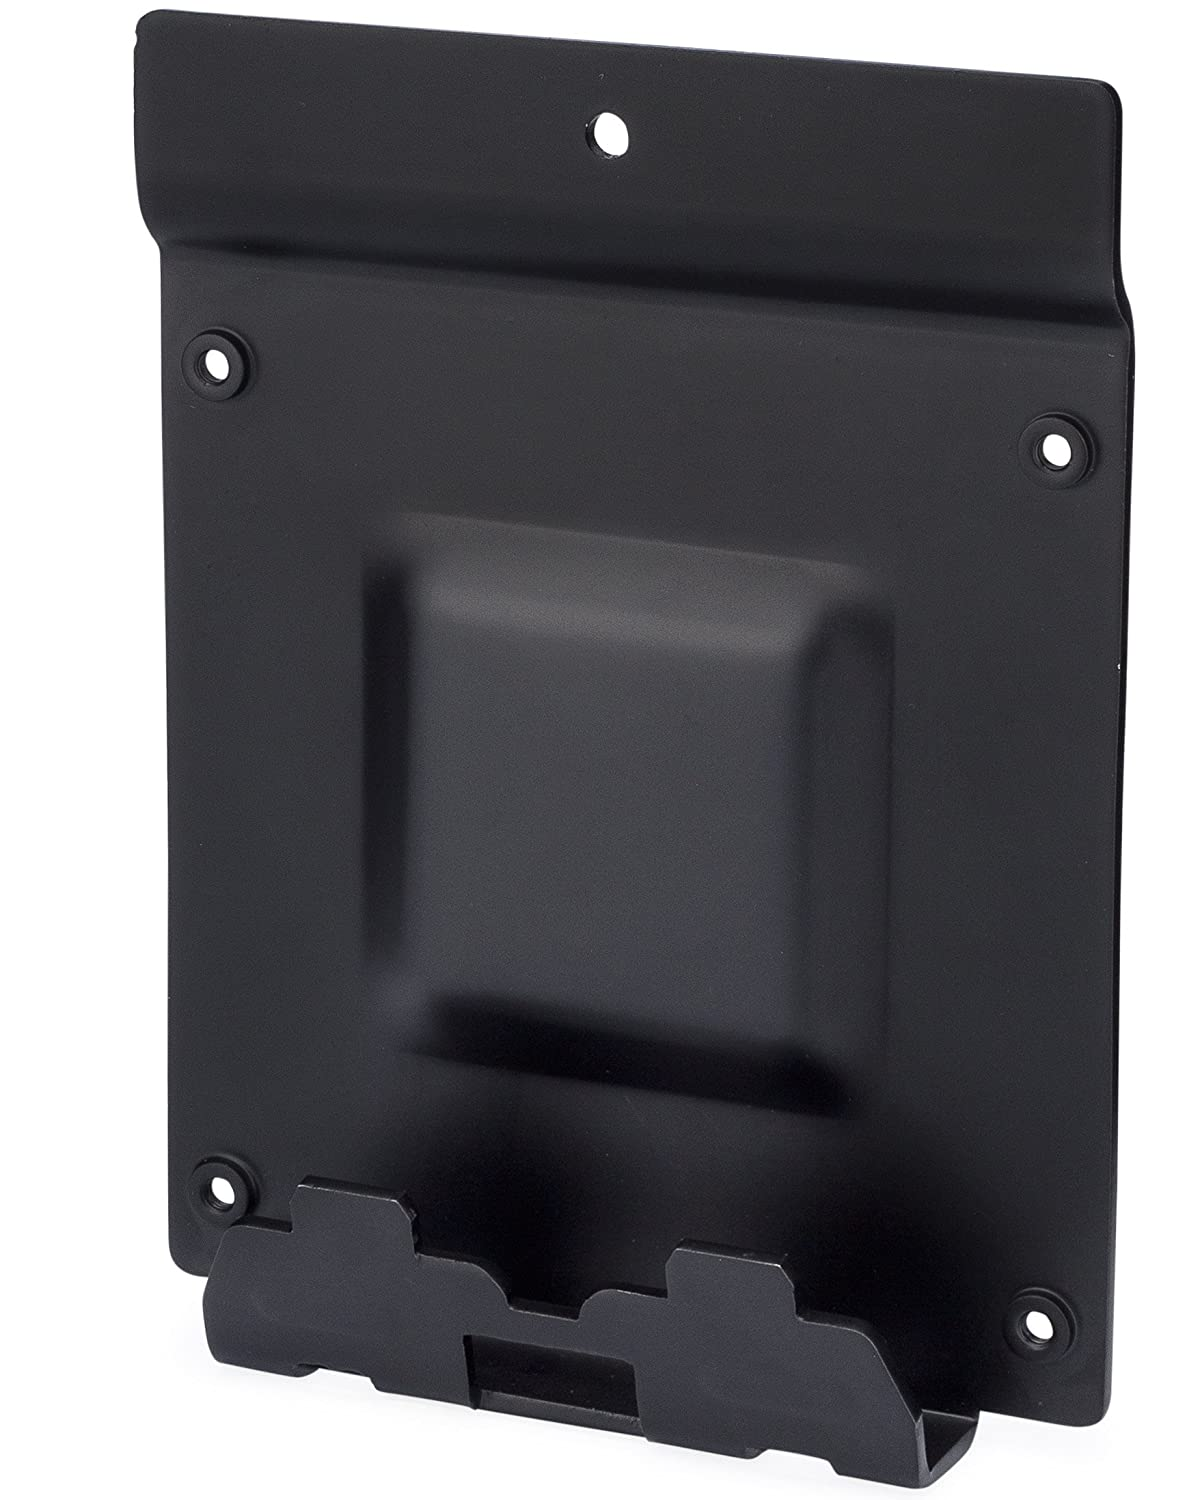 VESA Mount Adapter for HP 32-Inch Displays - Including HP Omen, Spectre, Pavilion, and Envy Media Display (Does Not Fit LED-Lit Model) Monitors - by HumanCentric